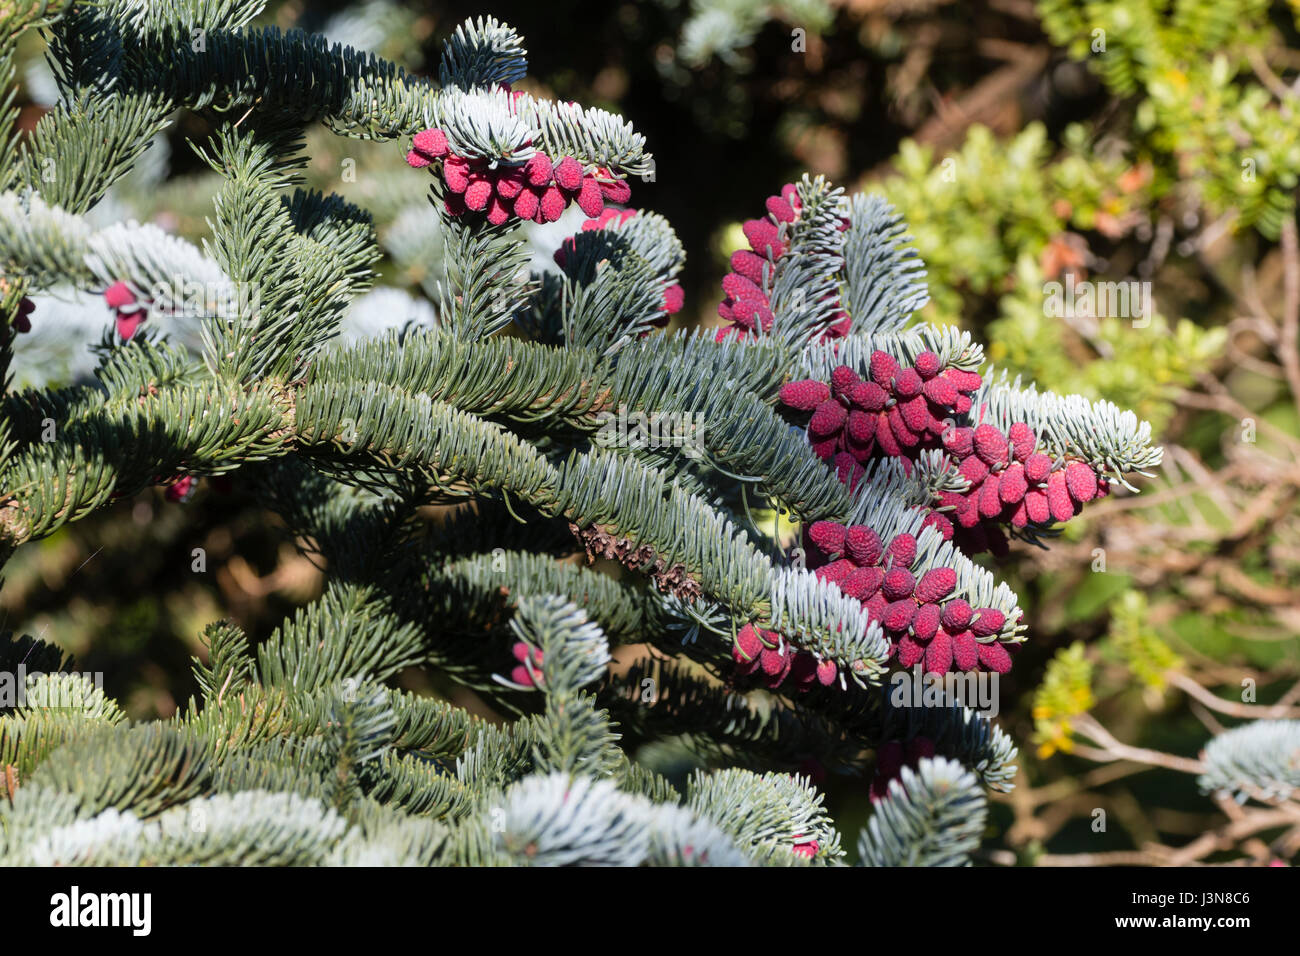 Red spring cones contrast with the silvery foliage of the evergreen fir, Abies procera 'Glauca Prostrata' - Stock Image